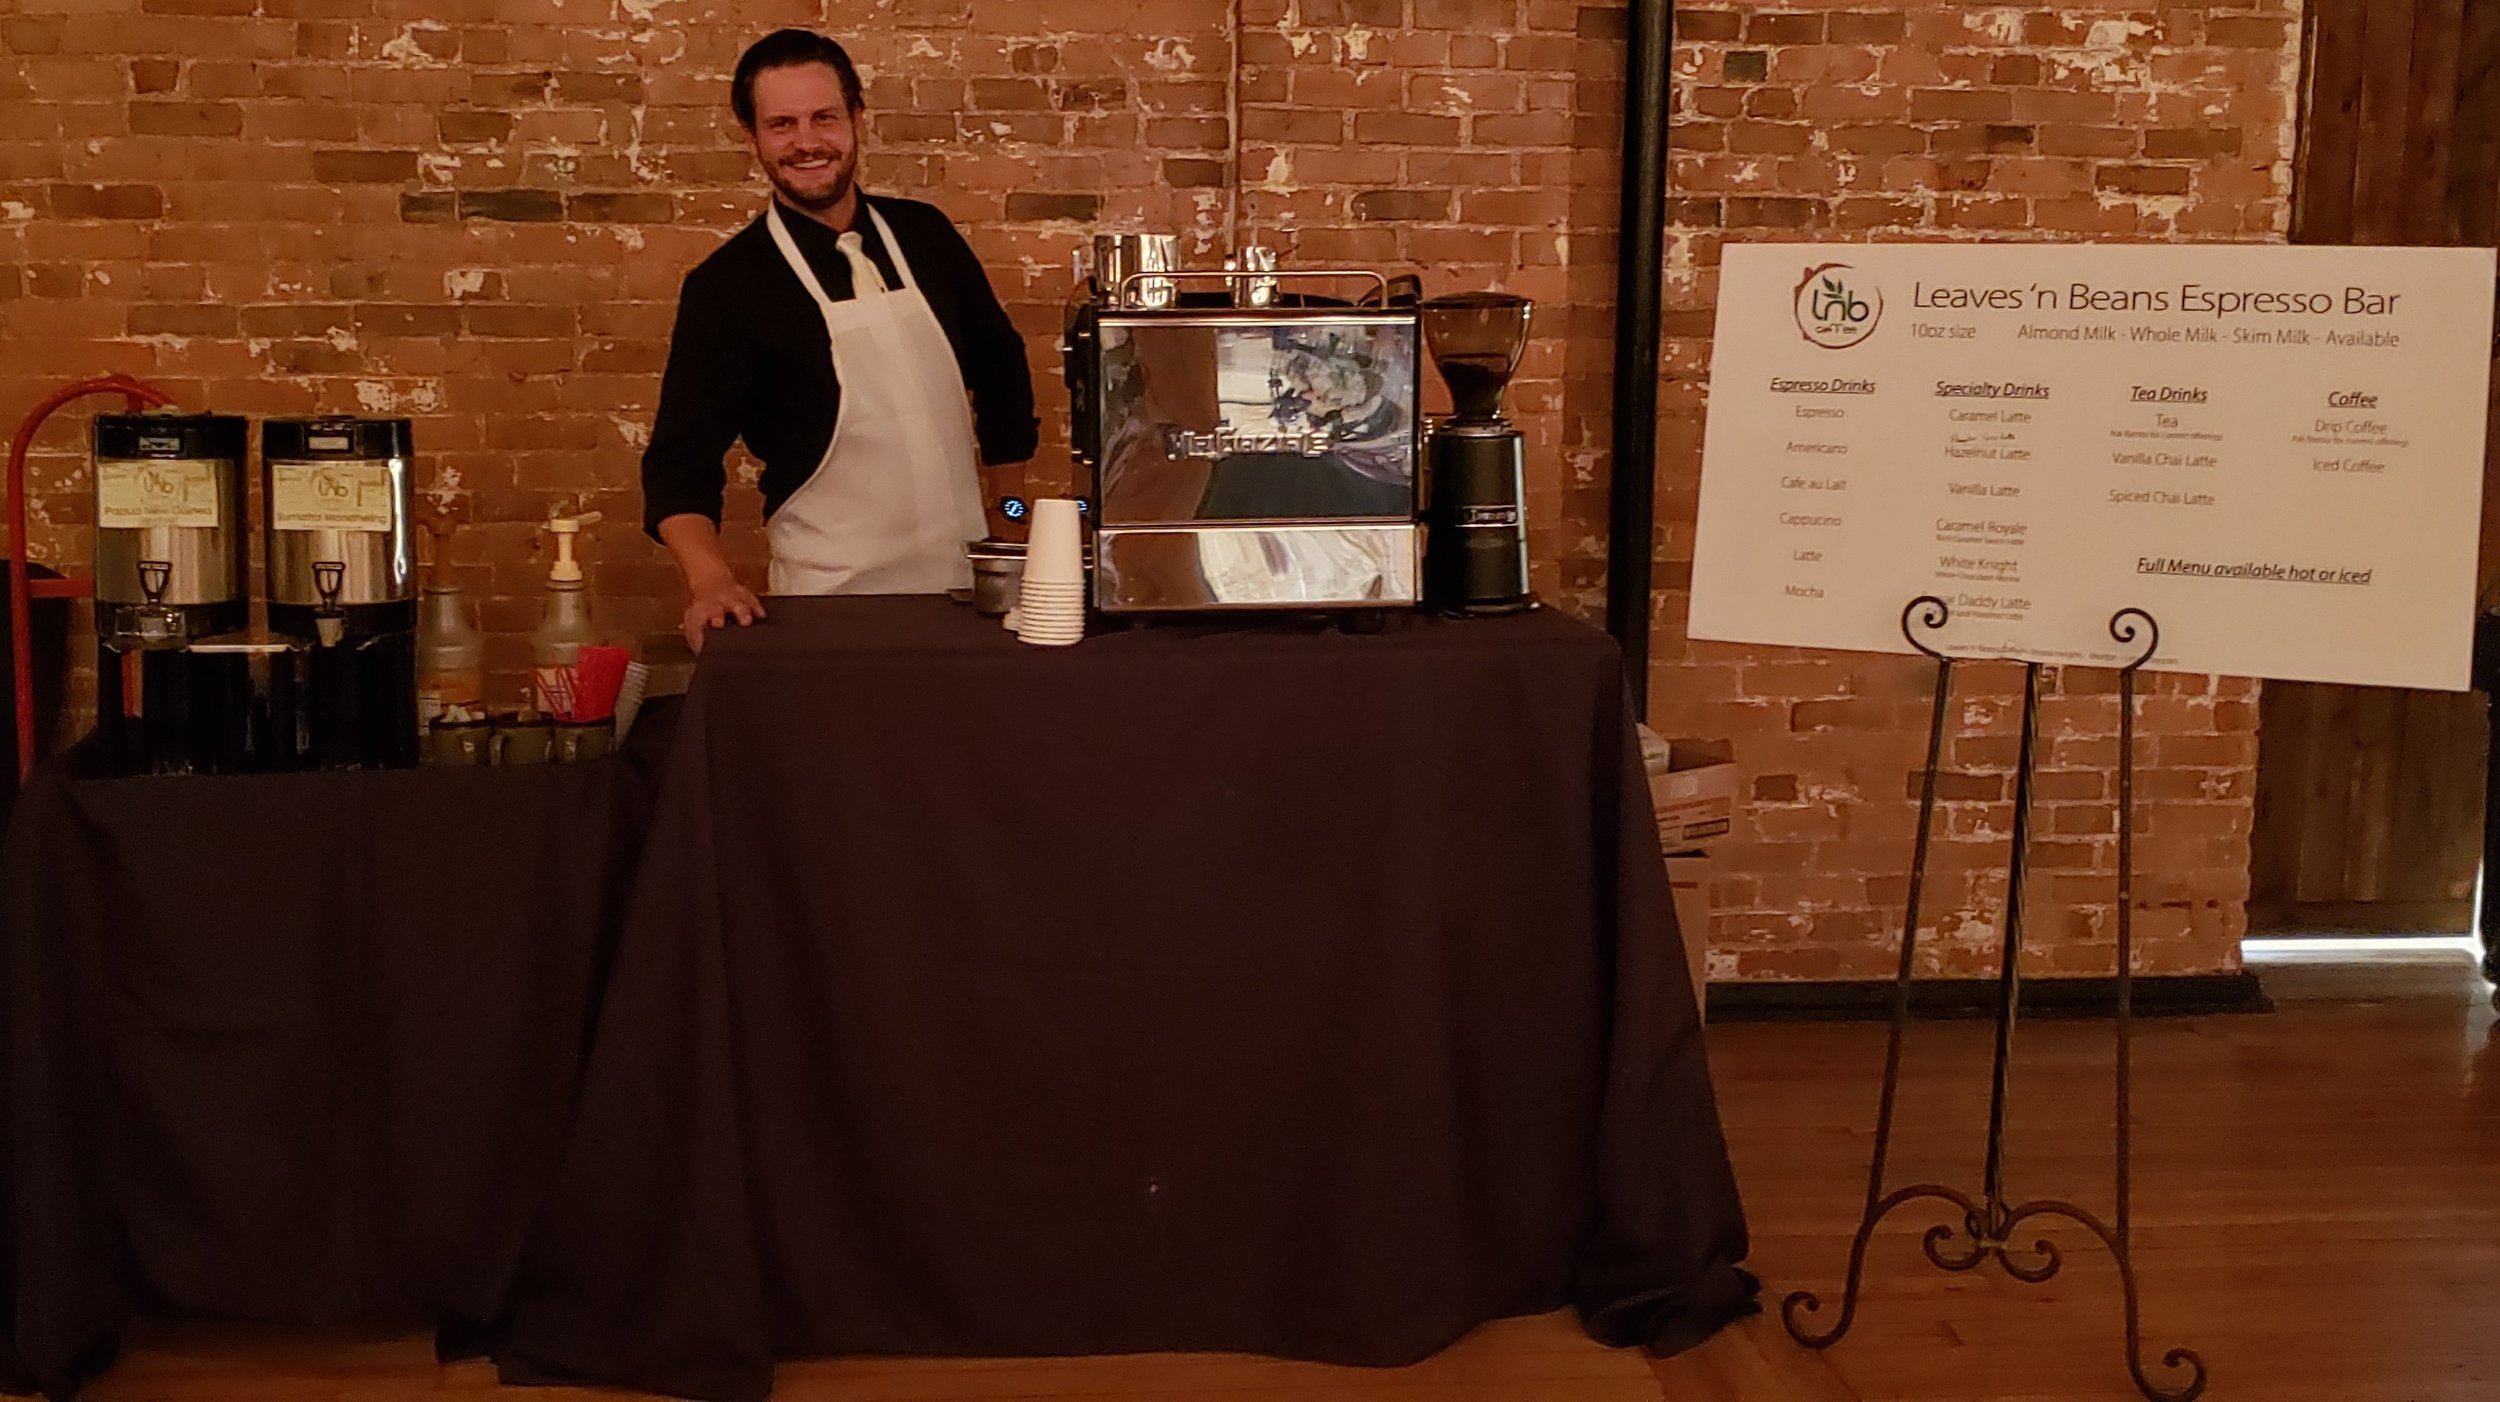 Espresso Bar Catering - We now offer a full espresso bar to cater your next event.Pricing and InformationEspresso Bar Menu